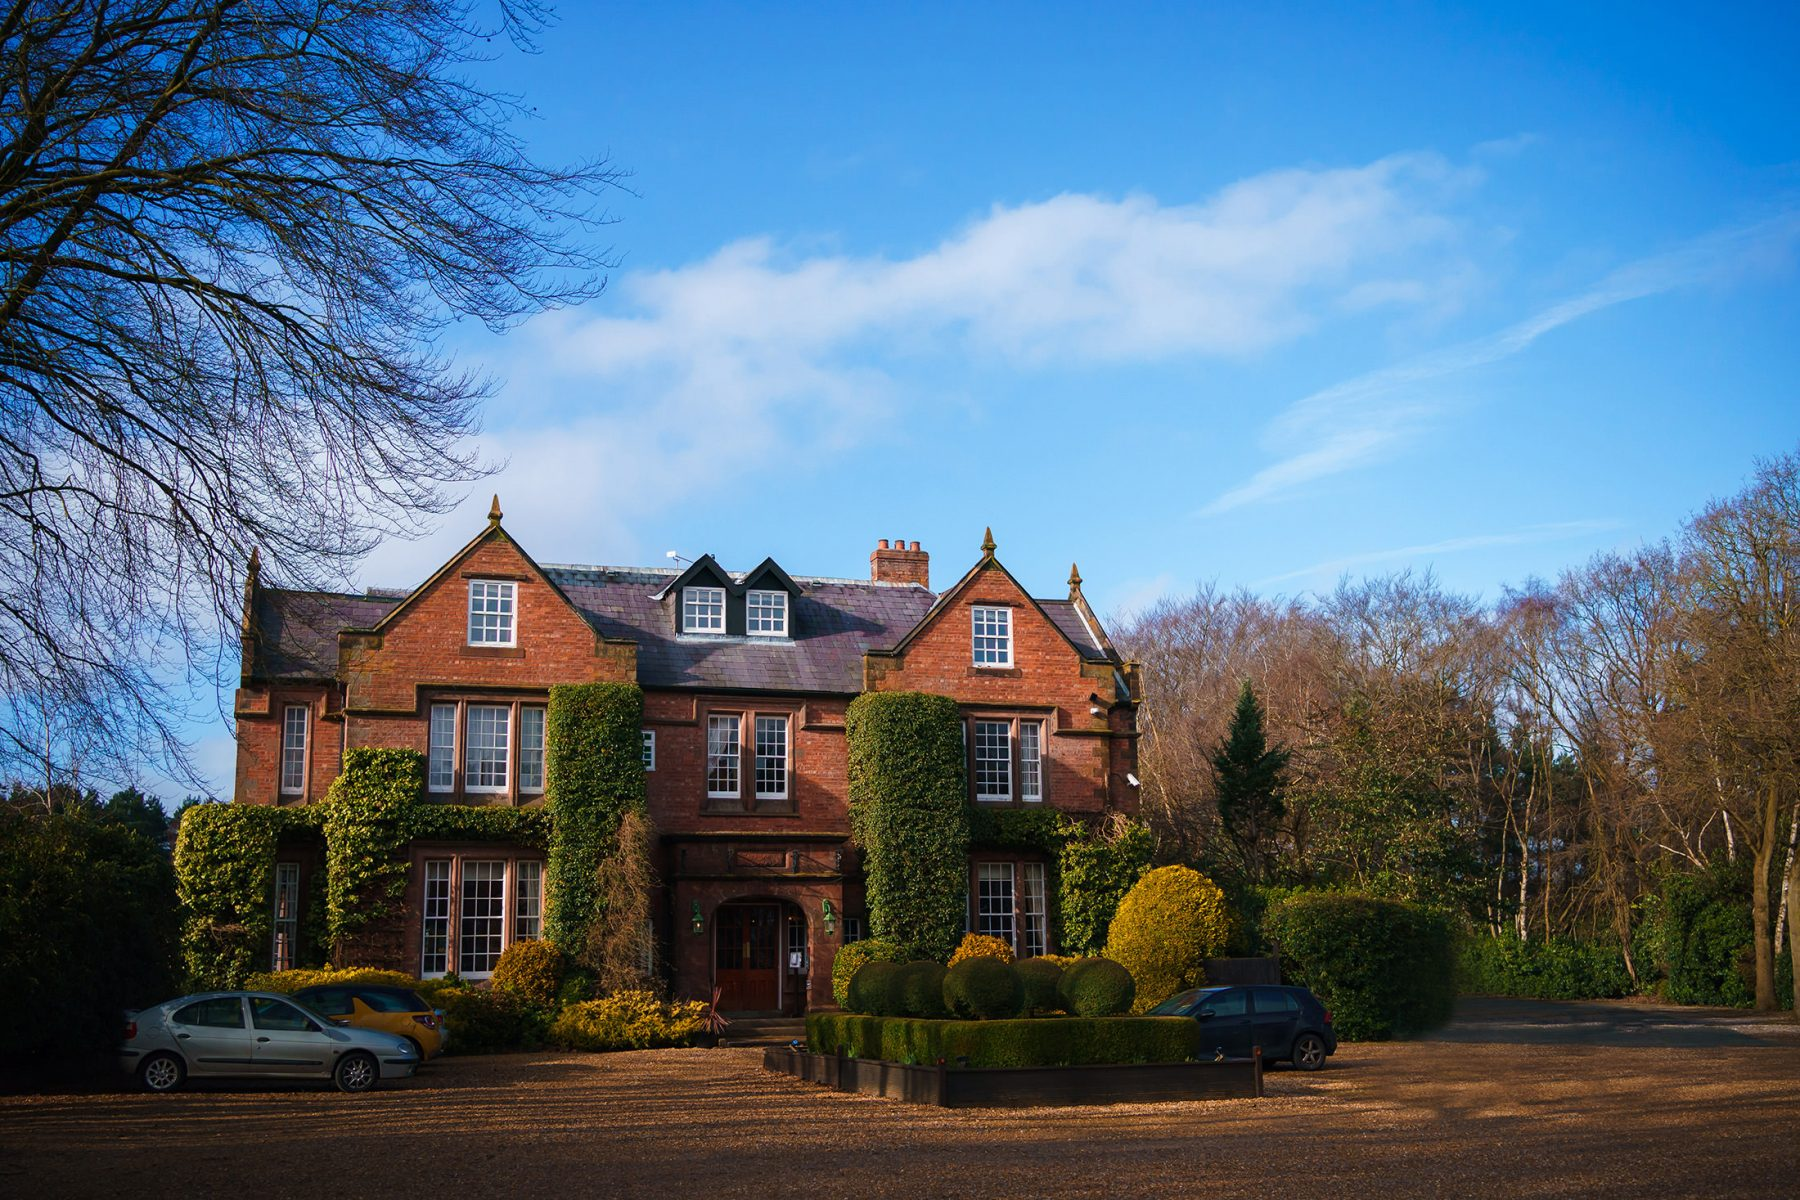 A picture of the front of Nunsmere Hall in Cheshire - Country House weddings at Nunsmere Hall